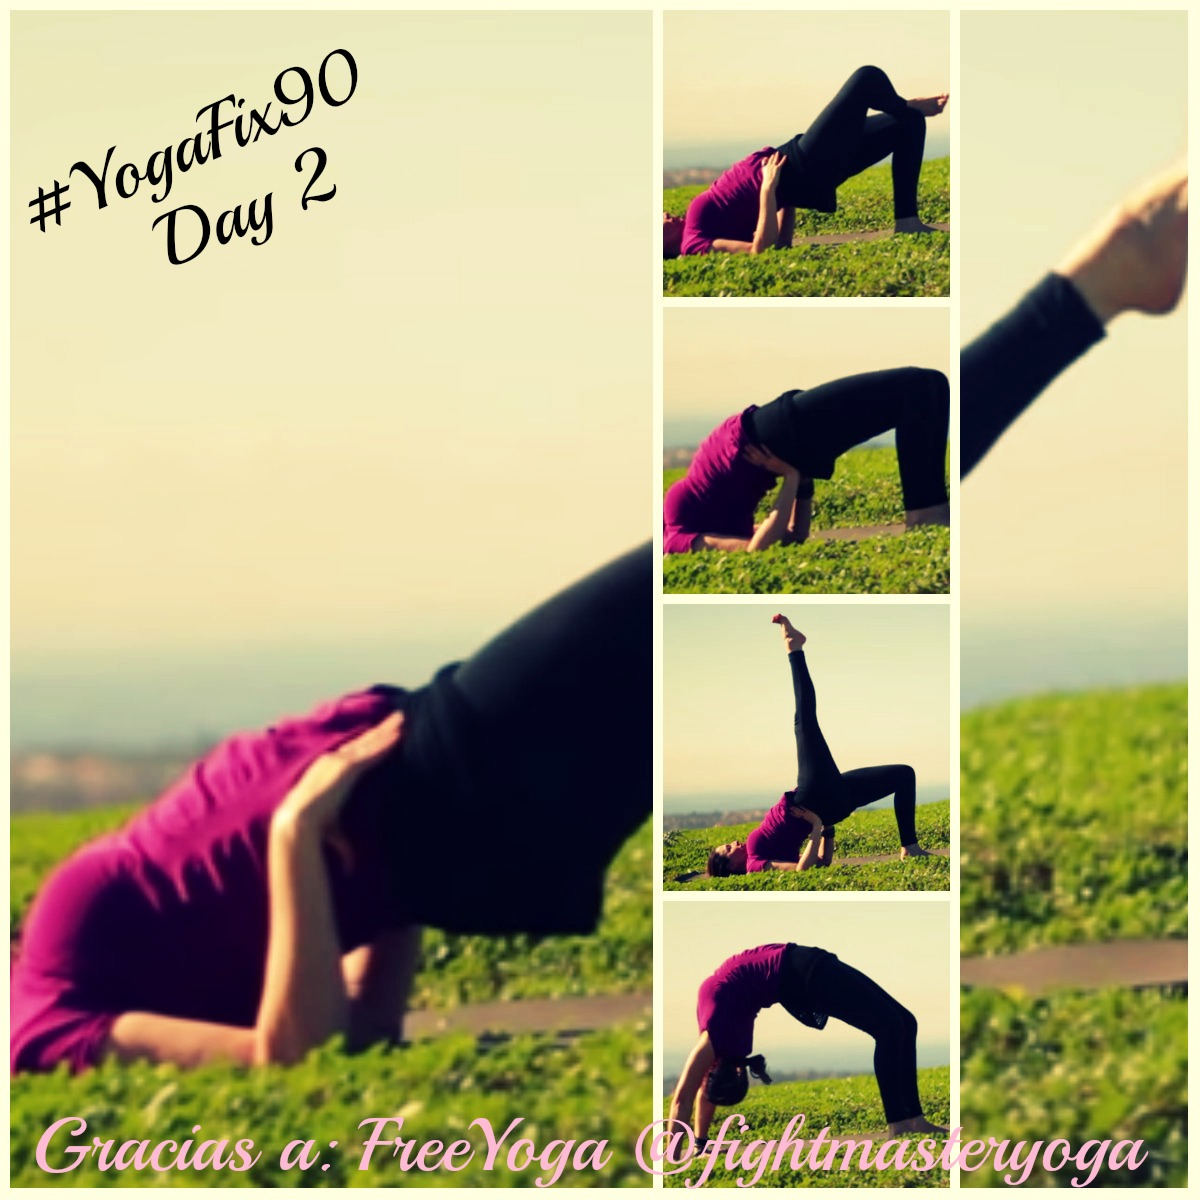 Yoga Fix 90 Day 2